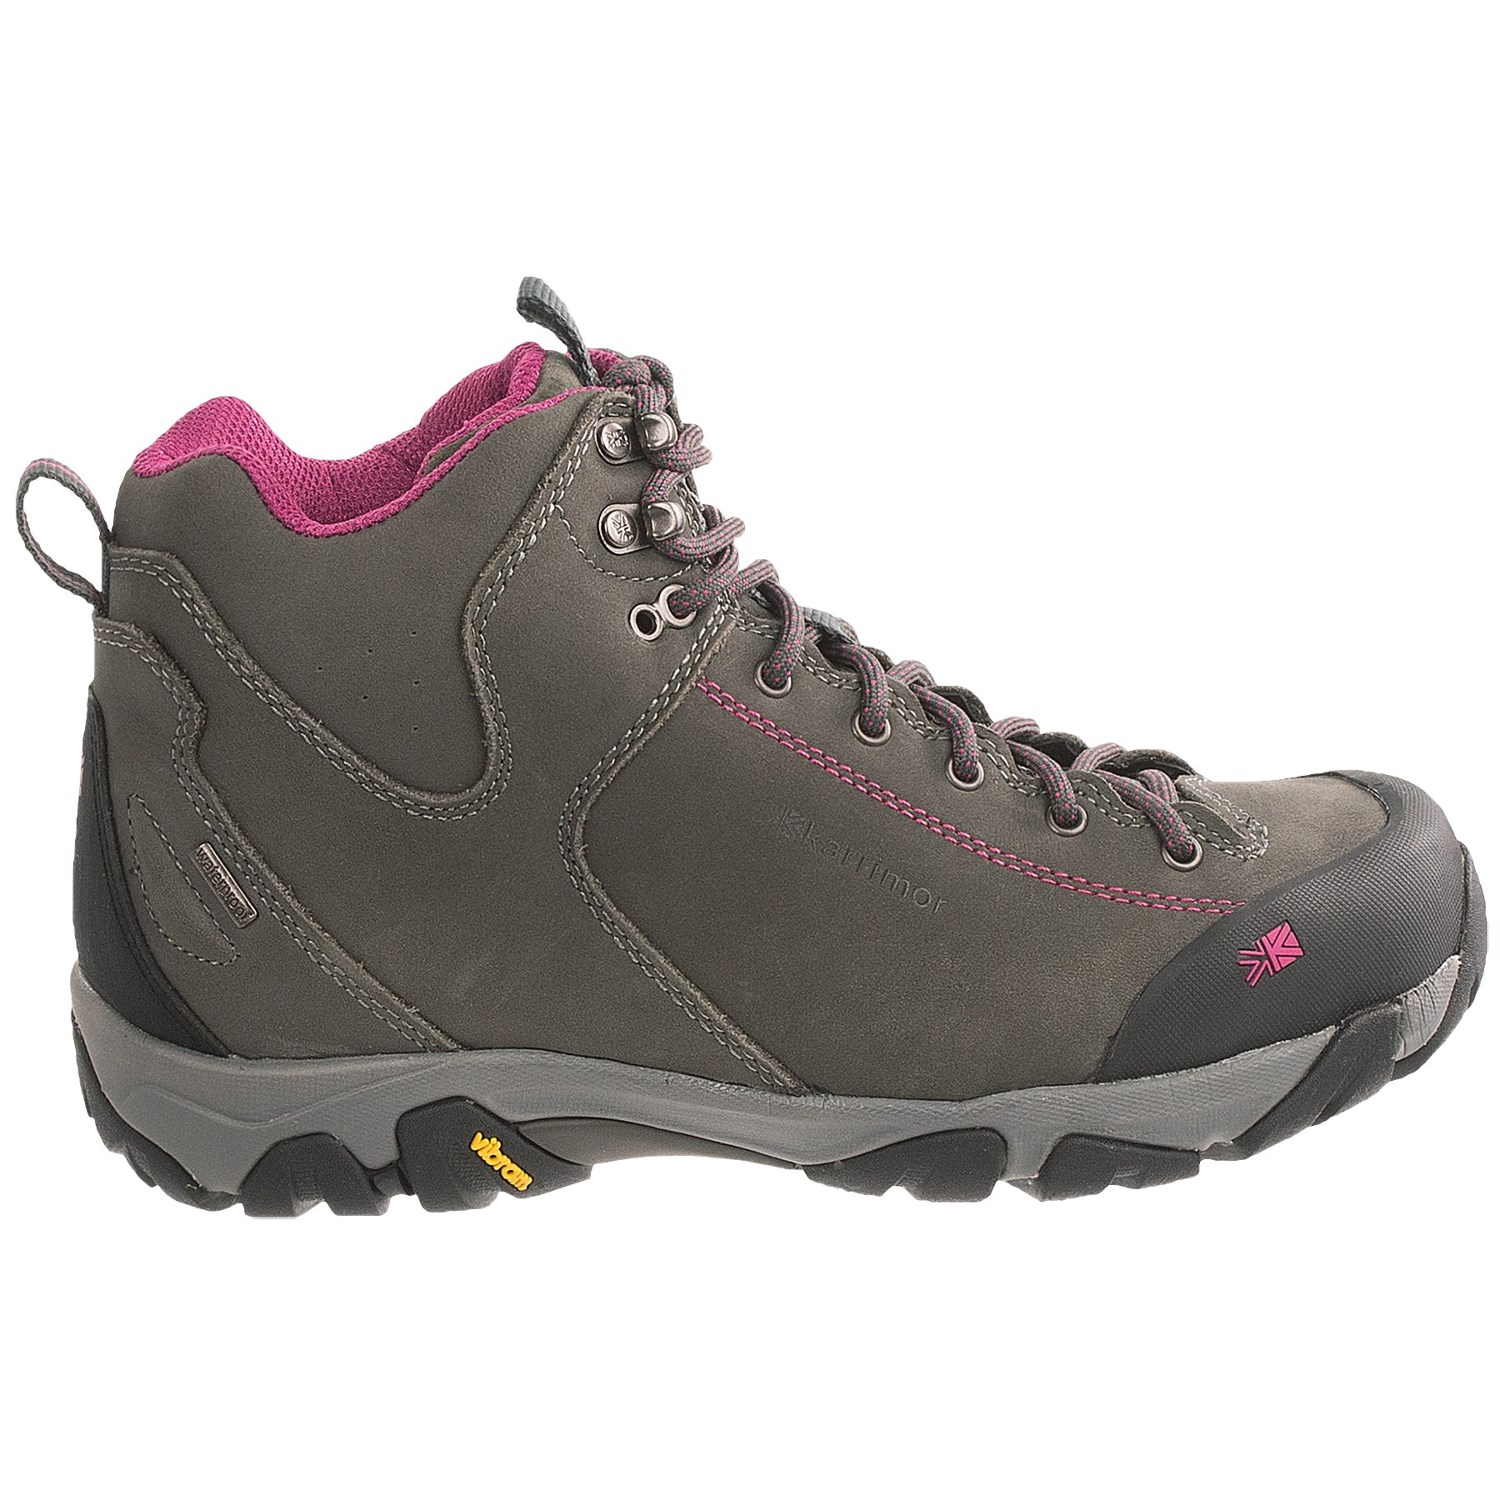 Salomon Waterproof Women S Hiking Shoes